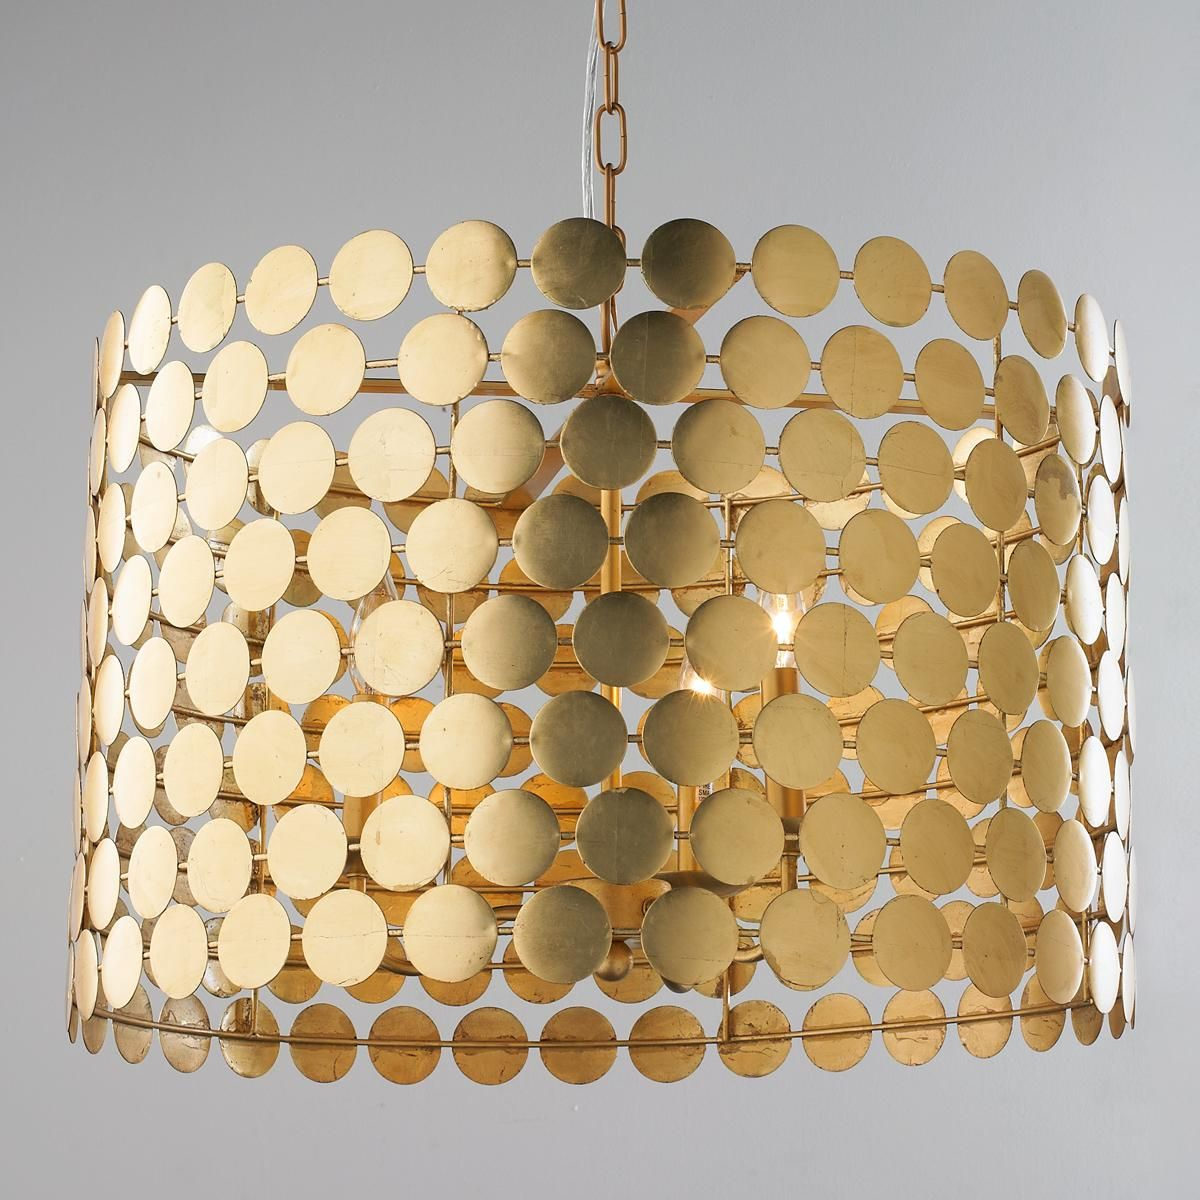 Dotted metal drum shade chandelier drum shade chandelier metal drum and drum shade - Sparkling small crystal chandelier designs for any interior room ...